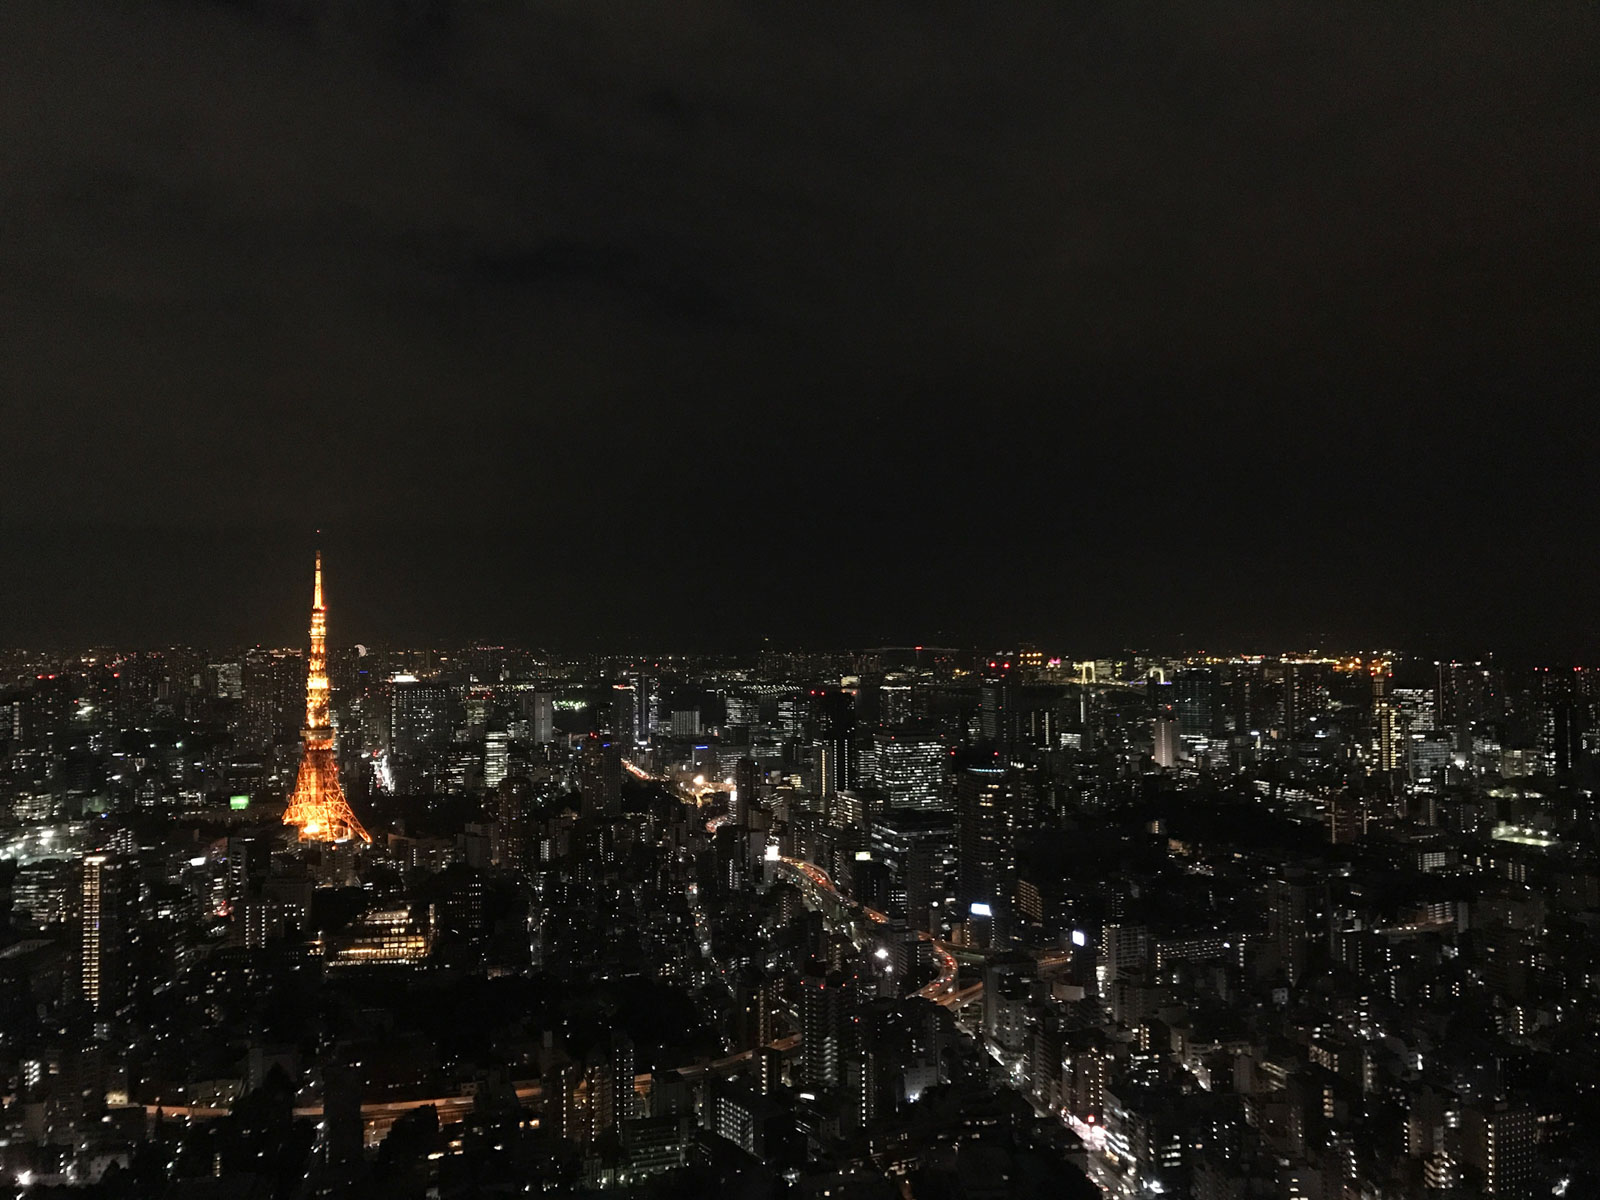 A city at night, with many buildings with lights on. One brightly lit tower with yellow lighting stands out amongst the other buildings